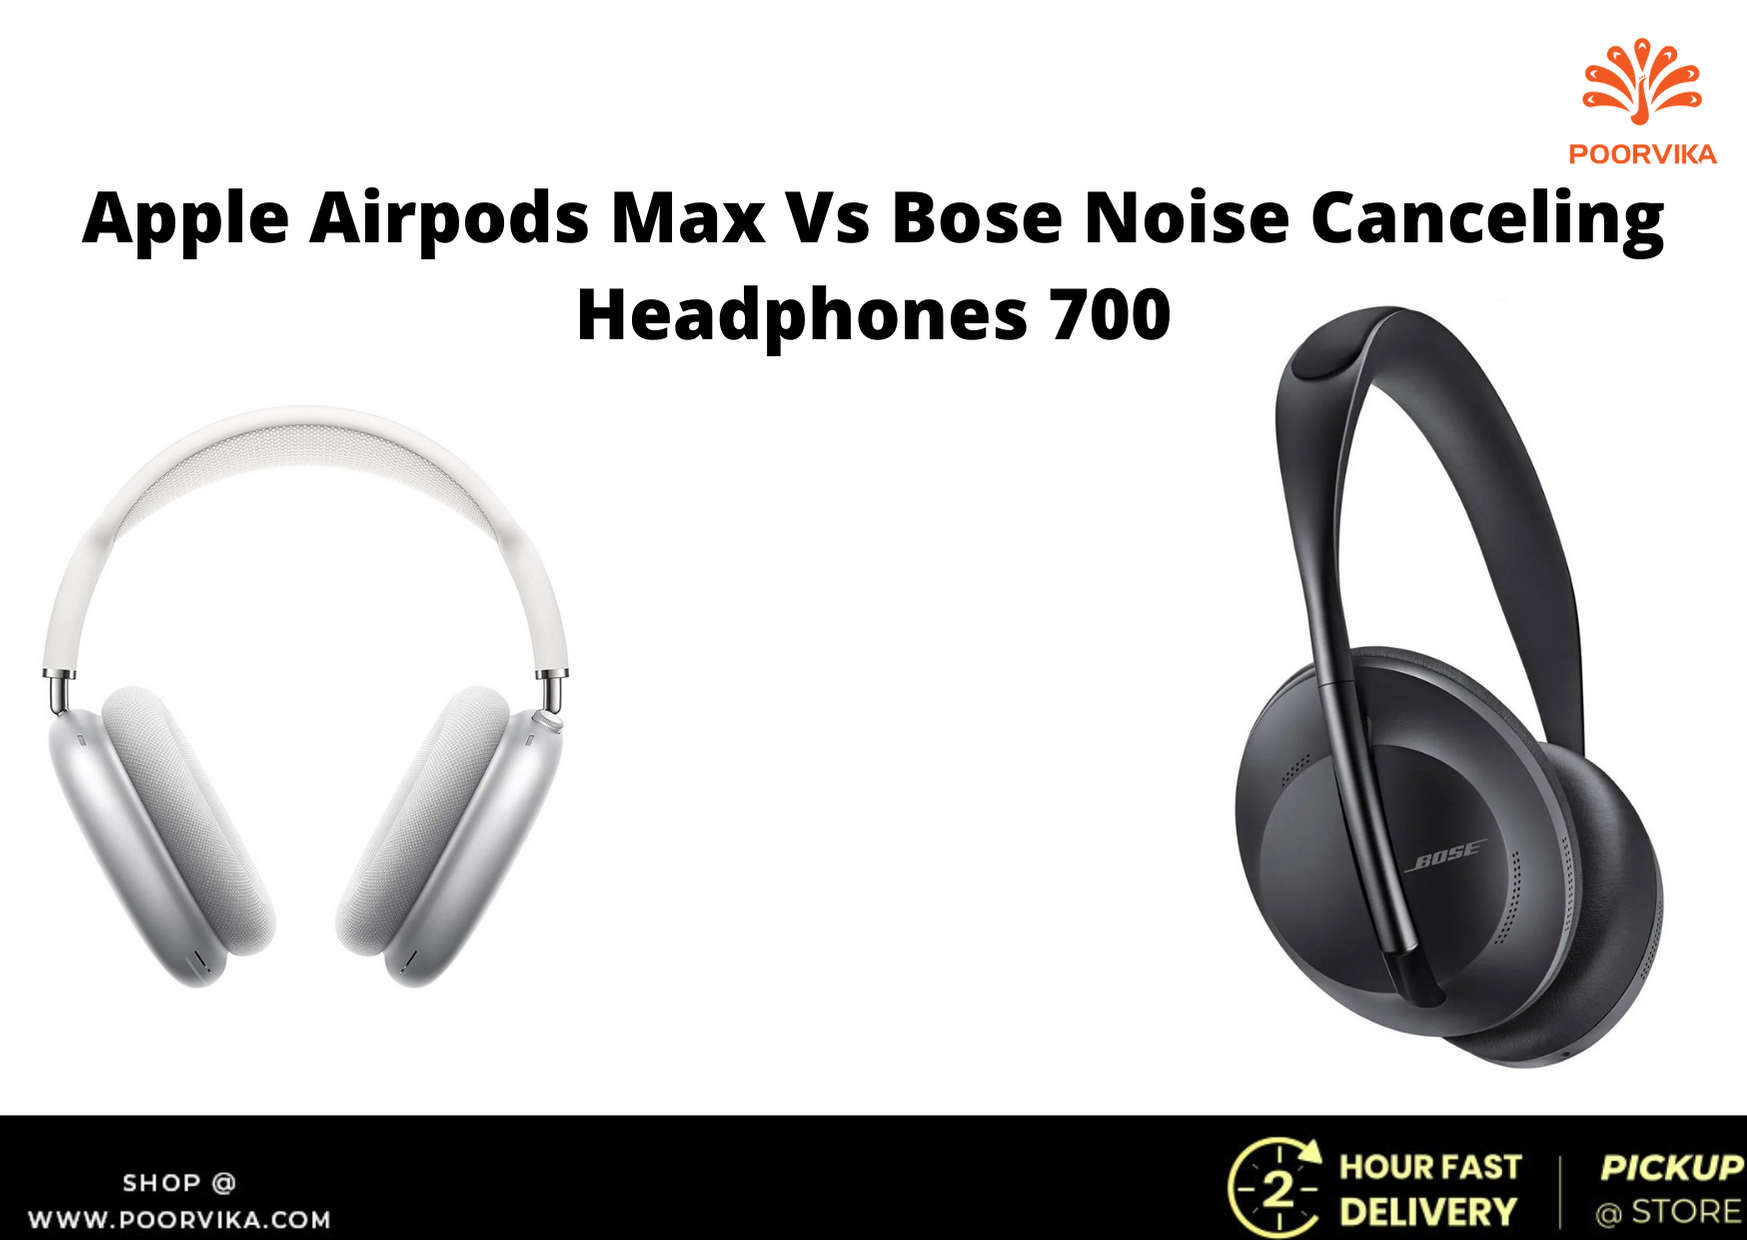 Apple Airpods Max Vs Bose Noise Canceling Headphones 700